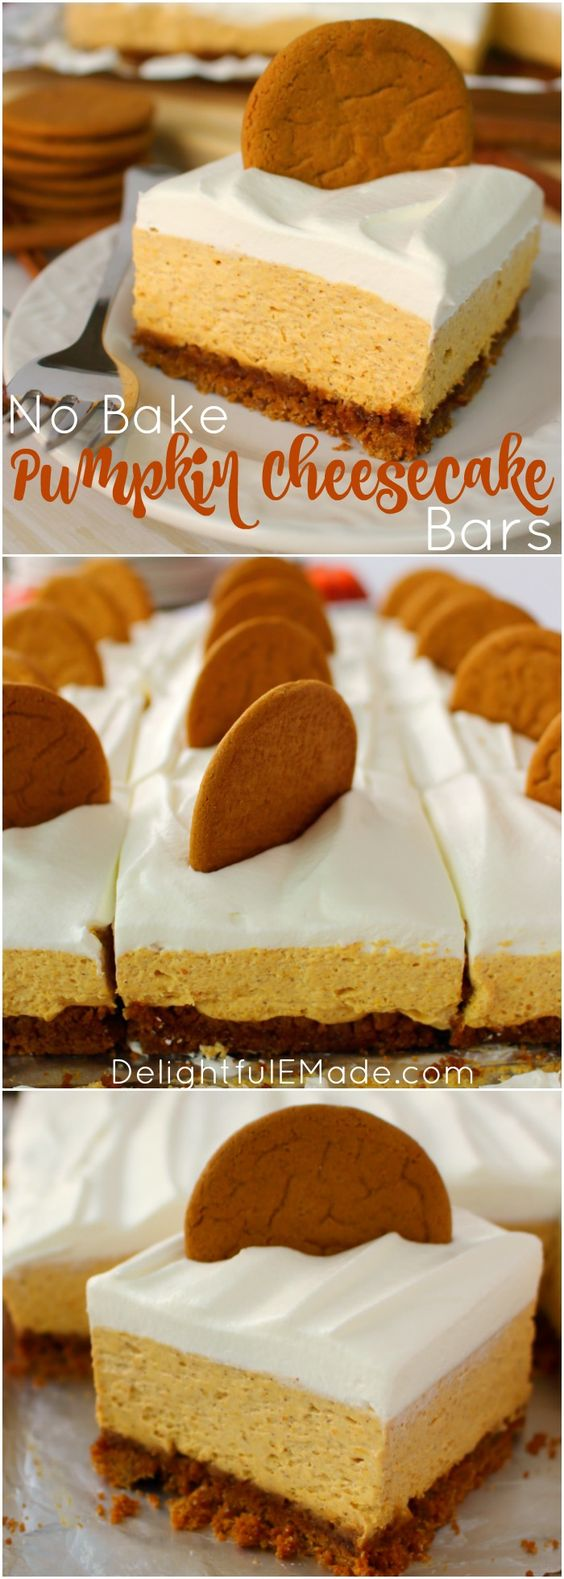 Let me introduce you to your new favorite fall dessert! Made with a Gingersnap Cookie Crust, whipped topping and a few other goodies, these No Bake Pumpkin Cheesecake Bars are simple enough for a casual fall celebration and decadent enough for Thanksgiving dinner!